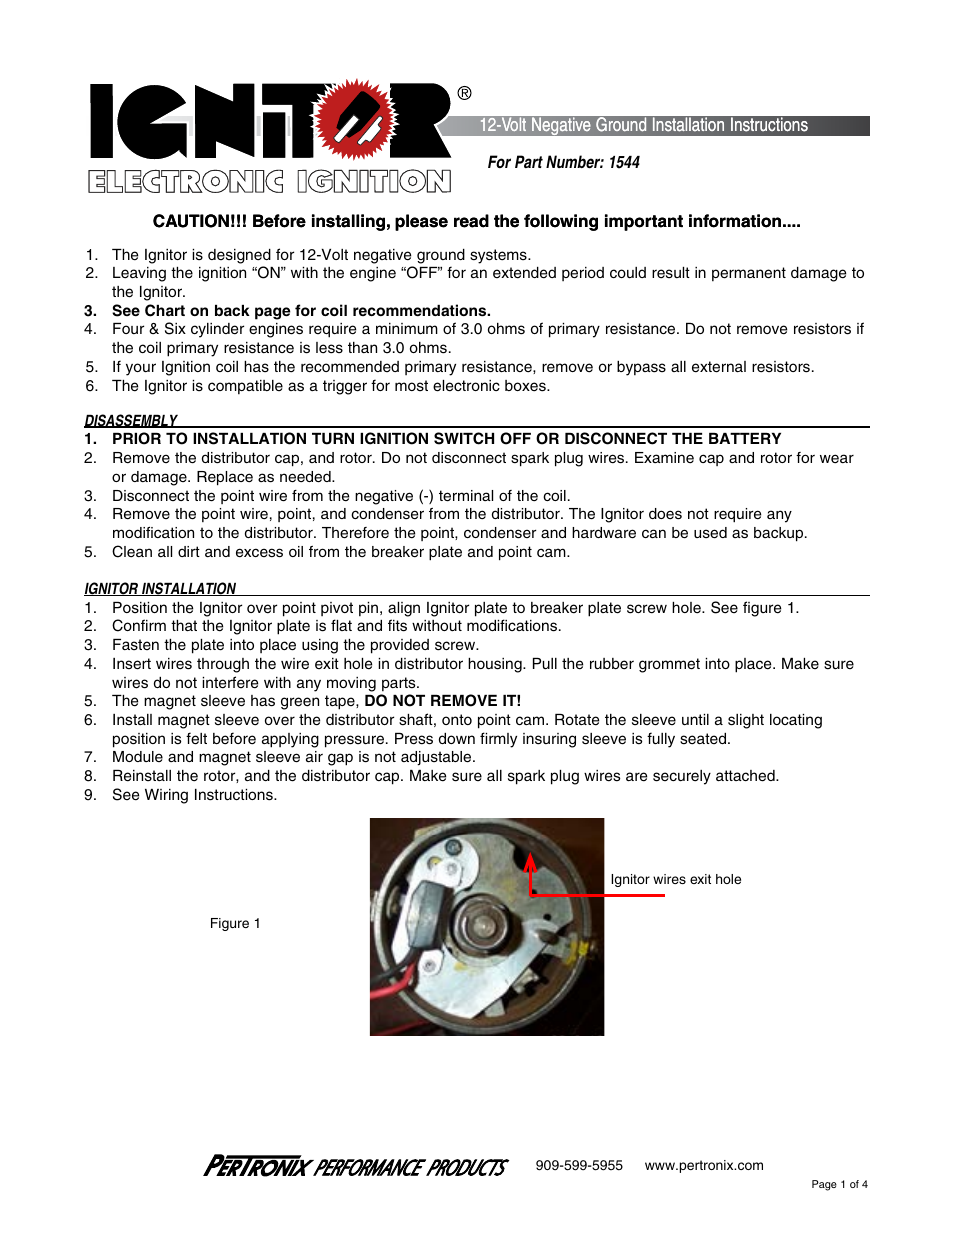 Delighted Pertronix Ignitor Wiring Diagram Photos - Electrical and ...